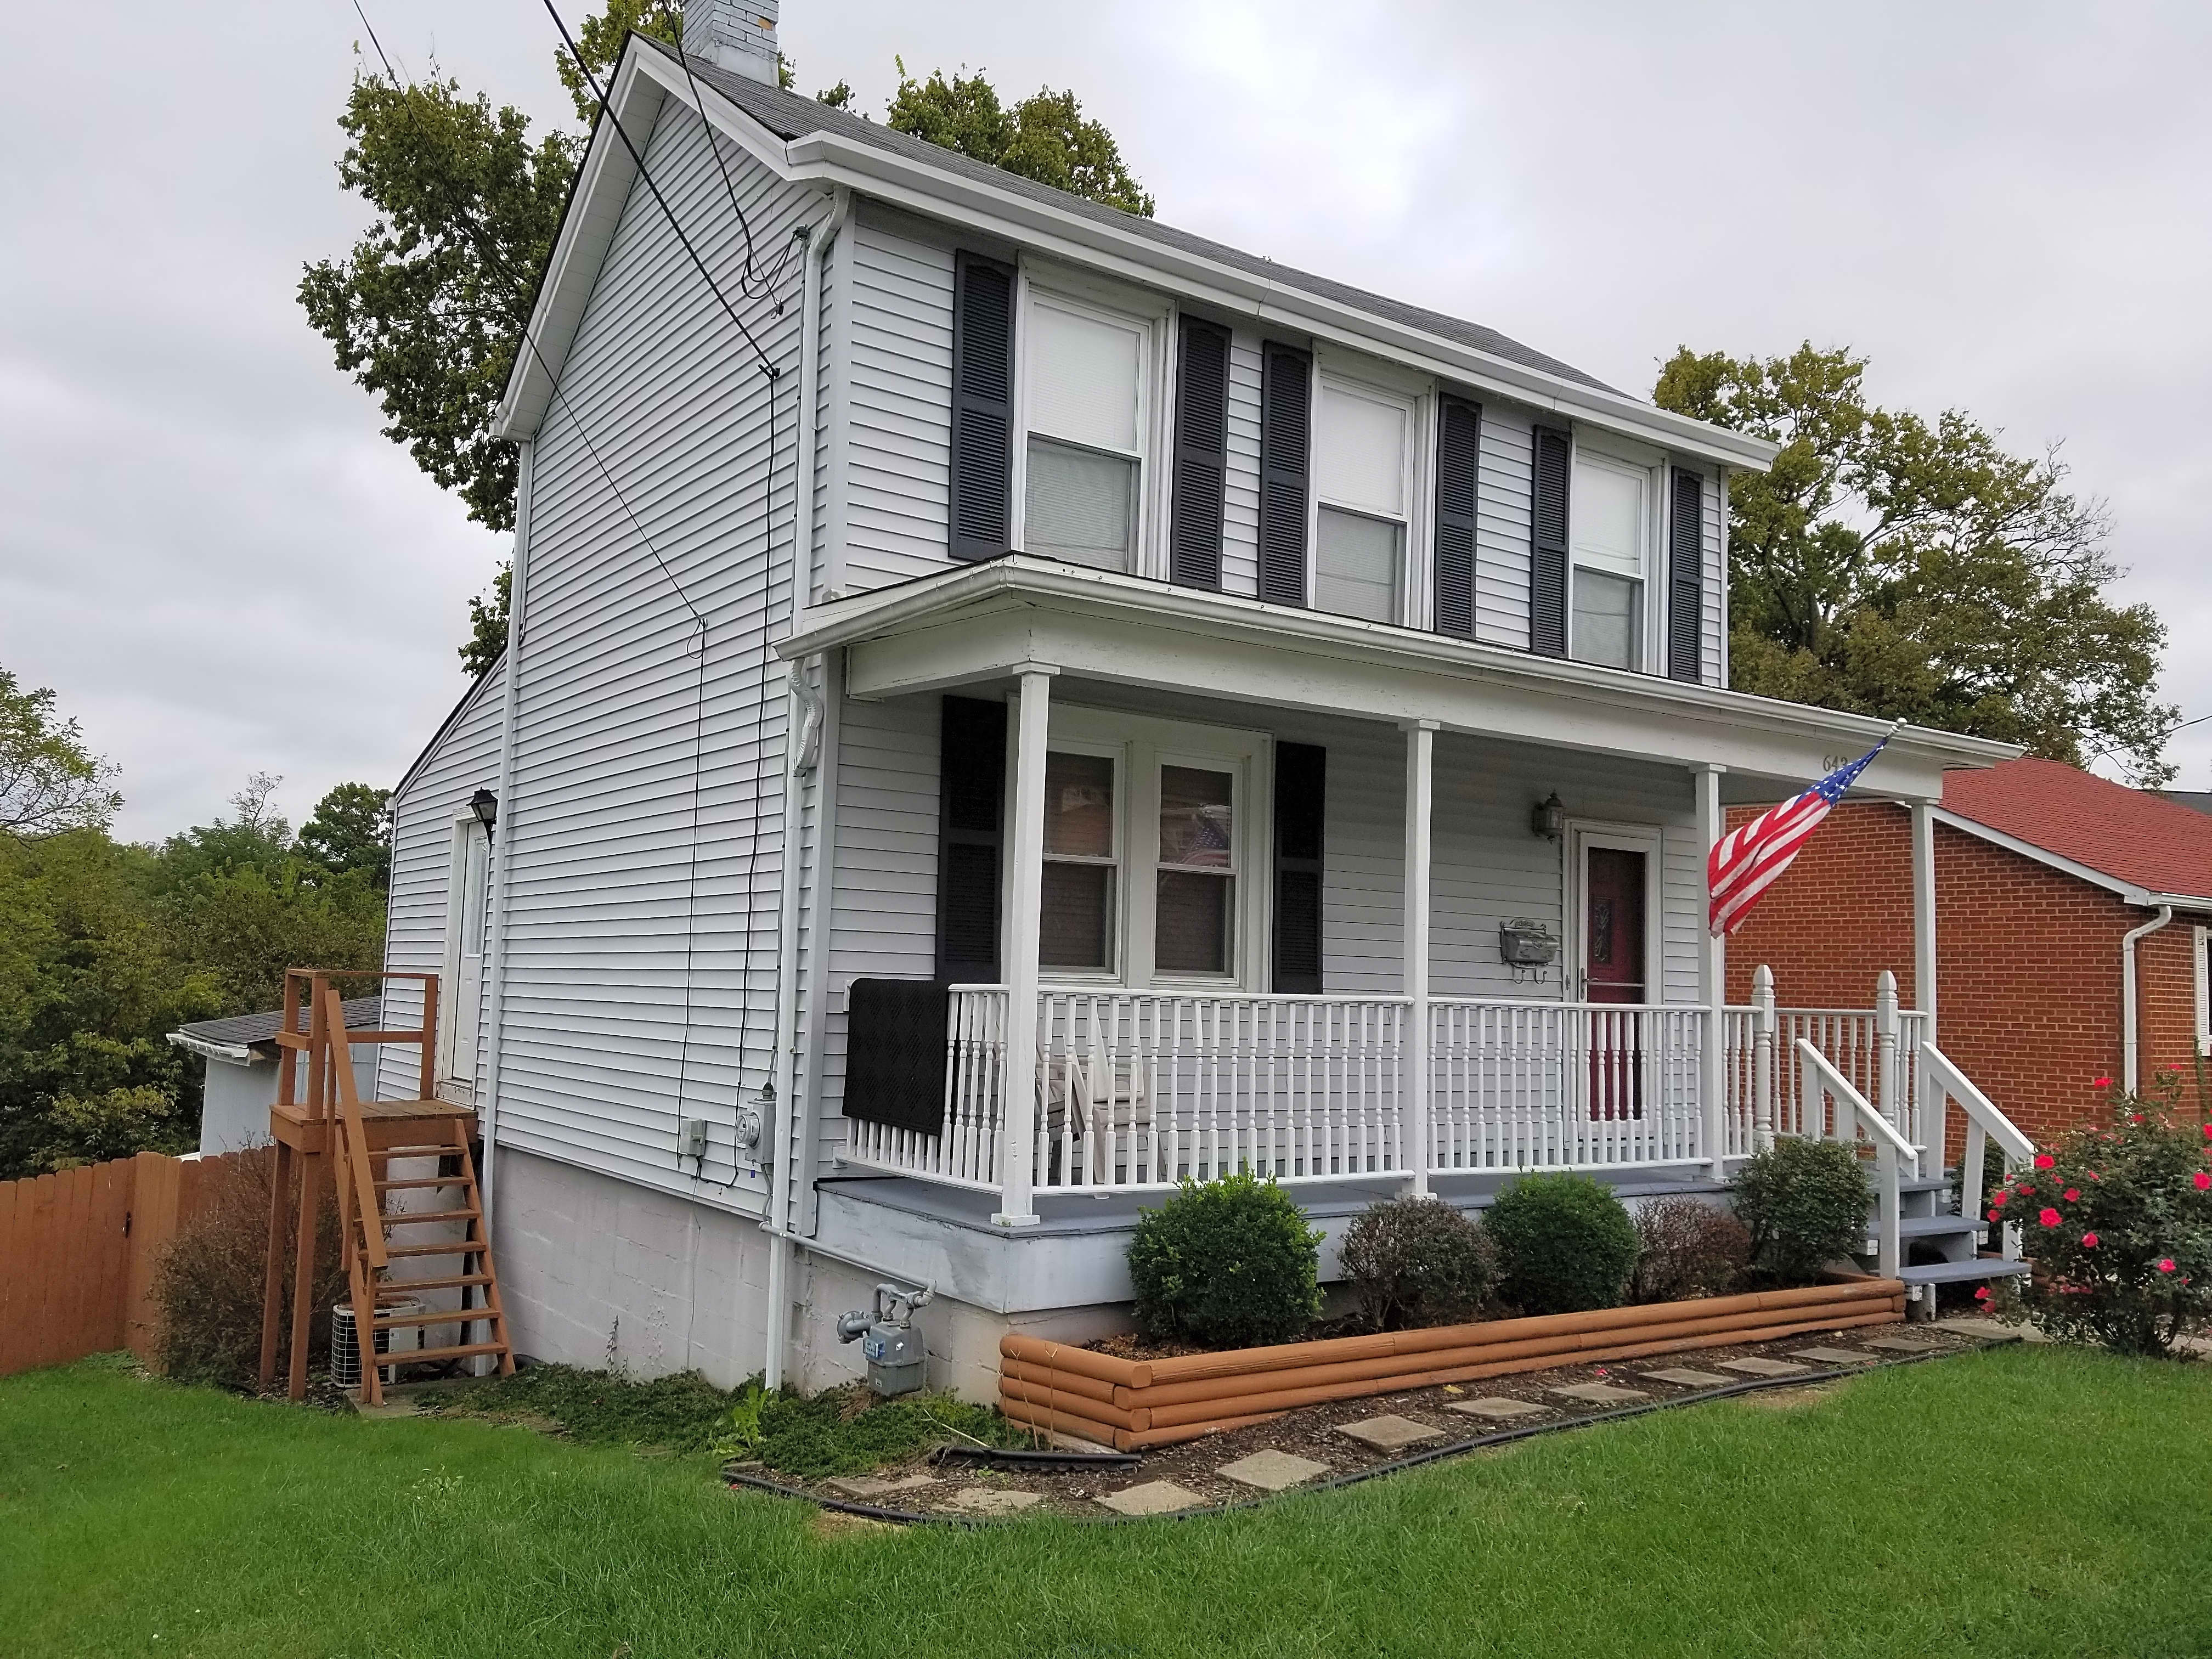 Kentucky Houses for Rent in Kentucky Rental Homes KY